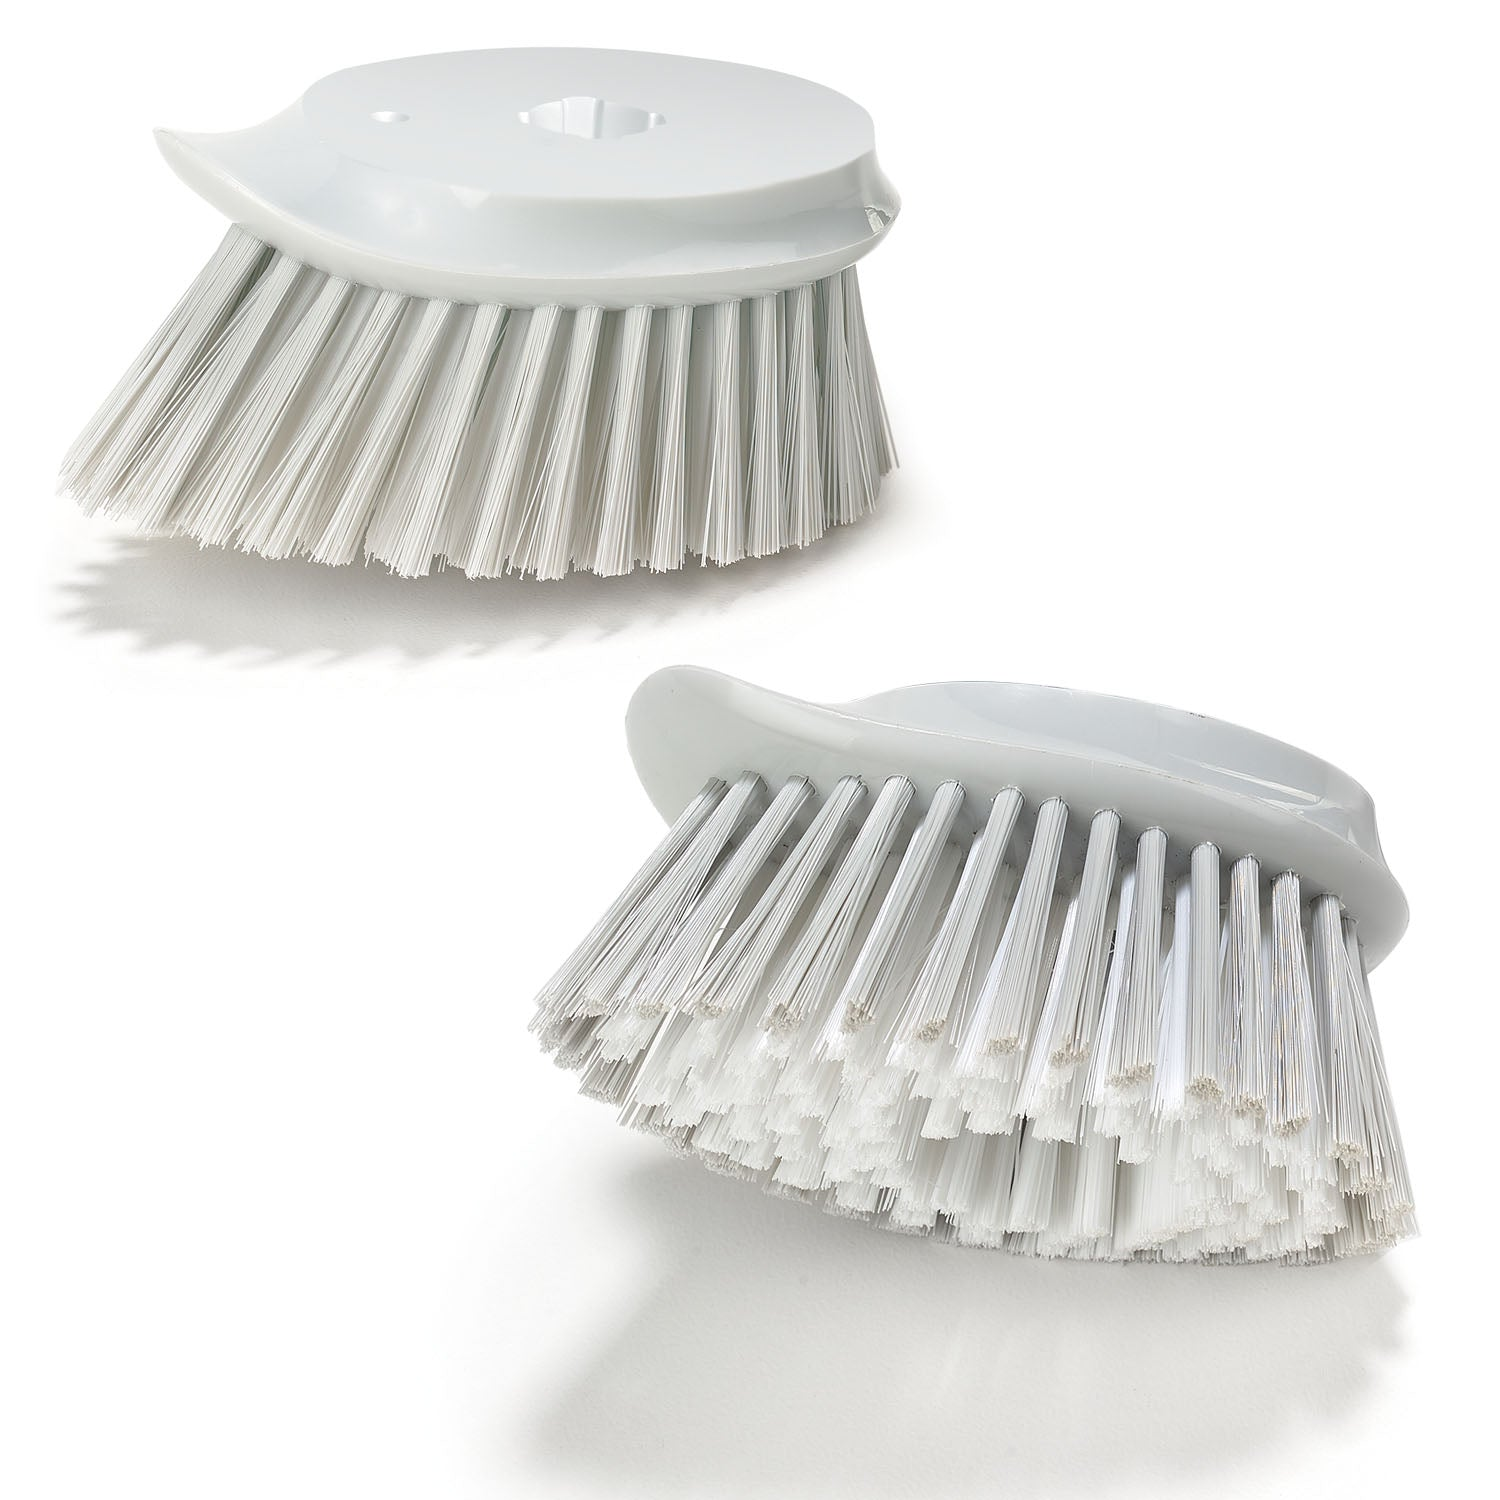 Brush Heads - Set of 2